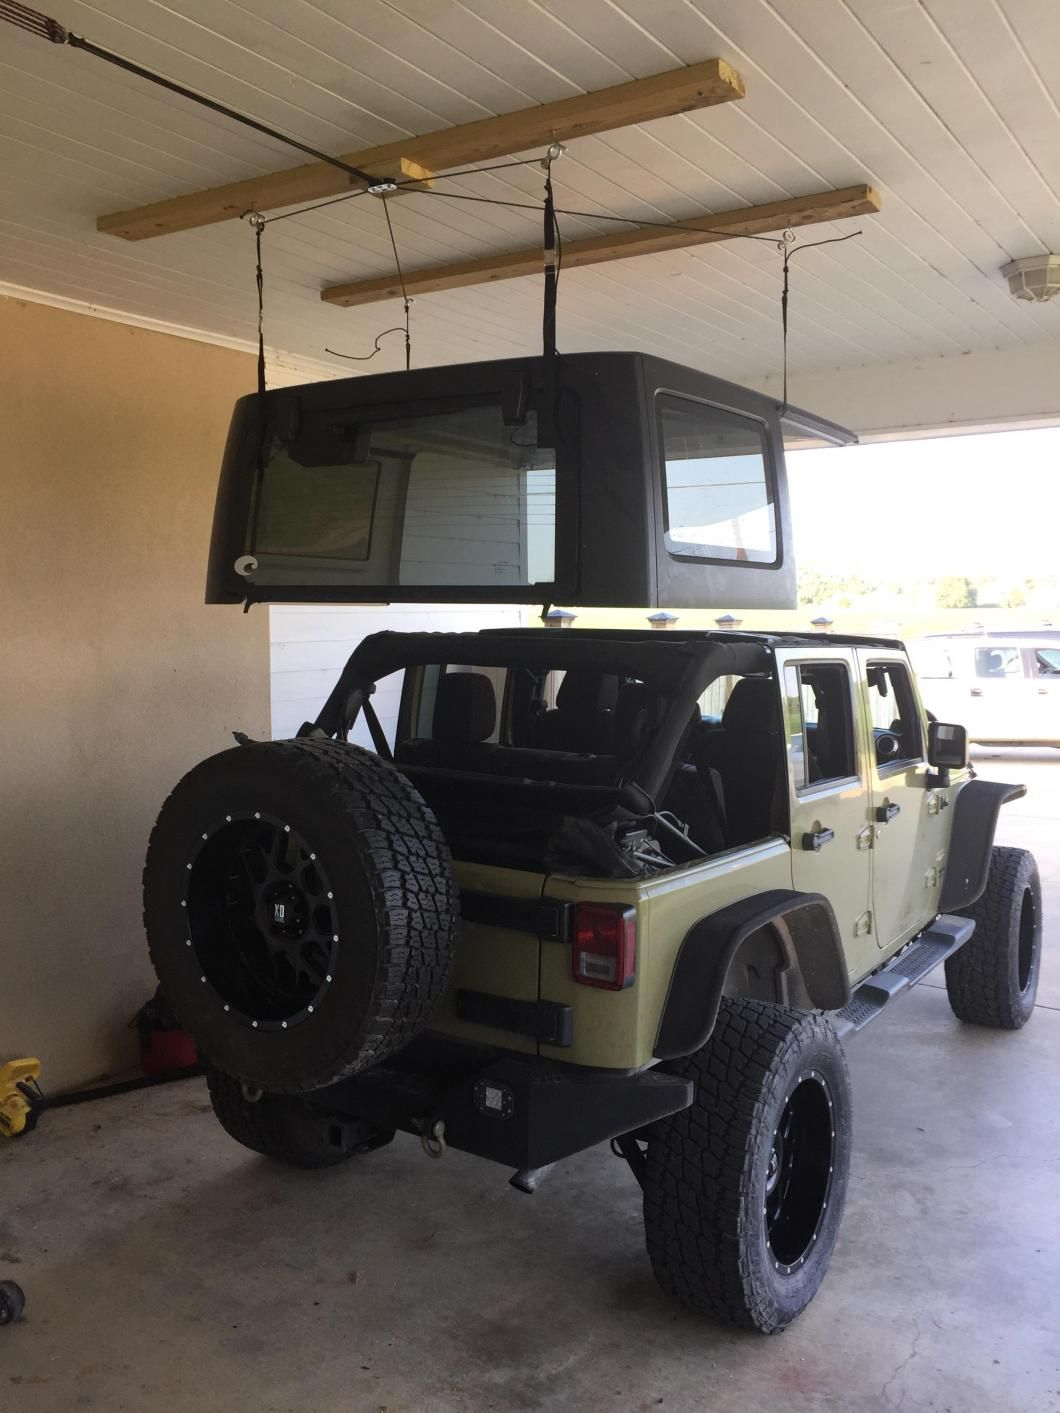 Pin By D J On Willys Jeep In 2020 With Images Jeep Garage Jeep Wrangler Jeep Doors